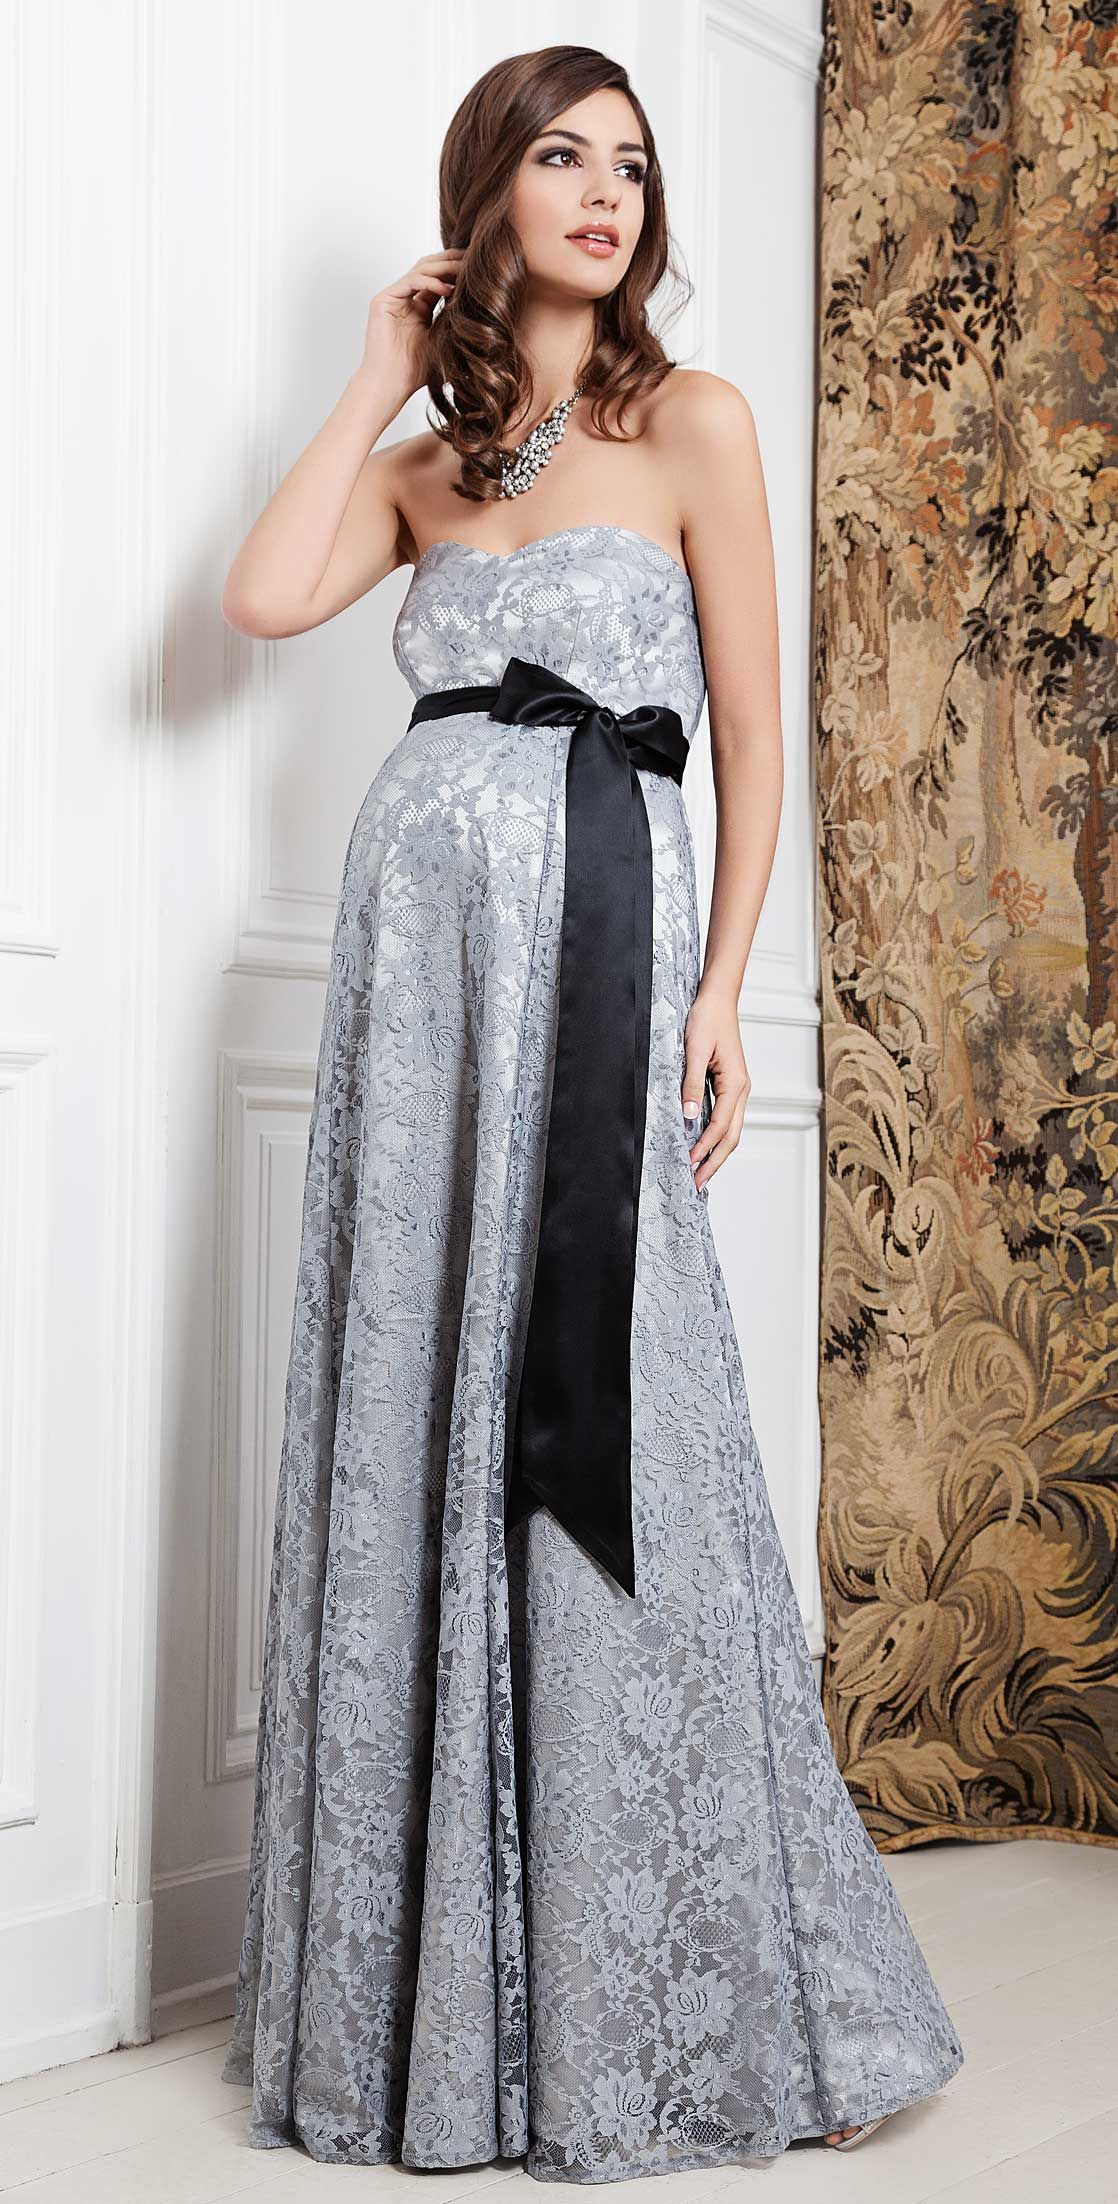 Olivia gown silver mist maternity gowns and gowns olivia gown maternity evening gownsmaternity ombrellifo Image collections